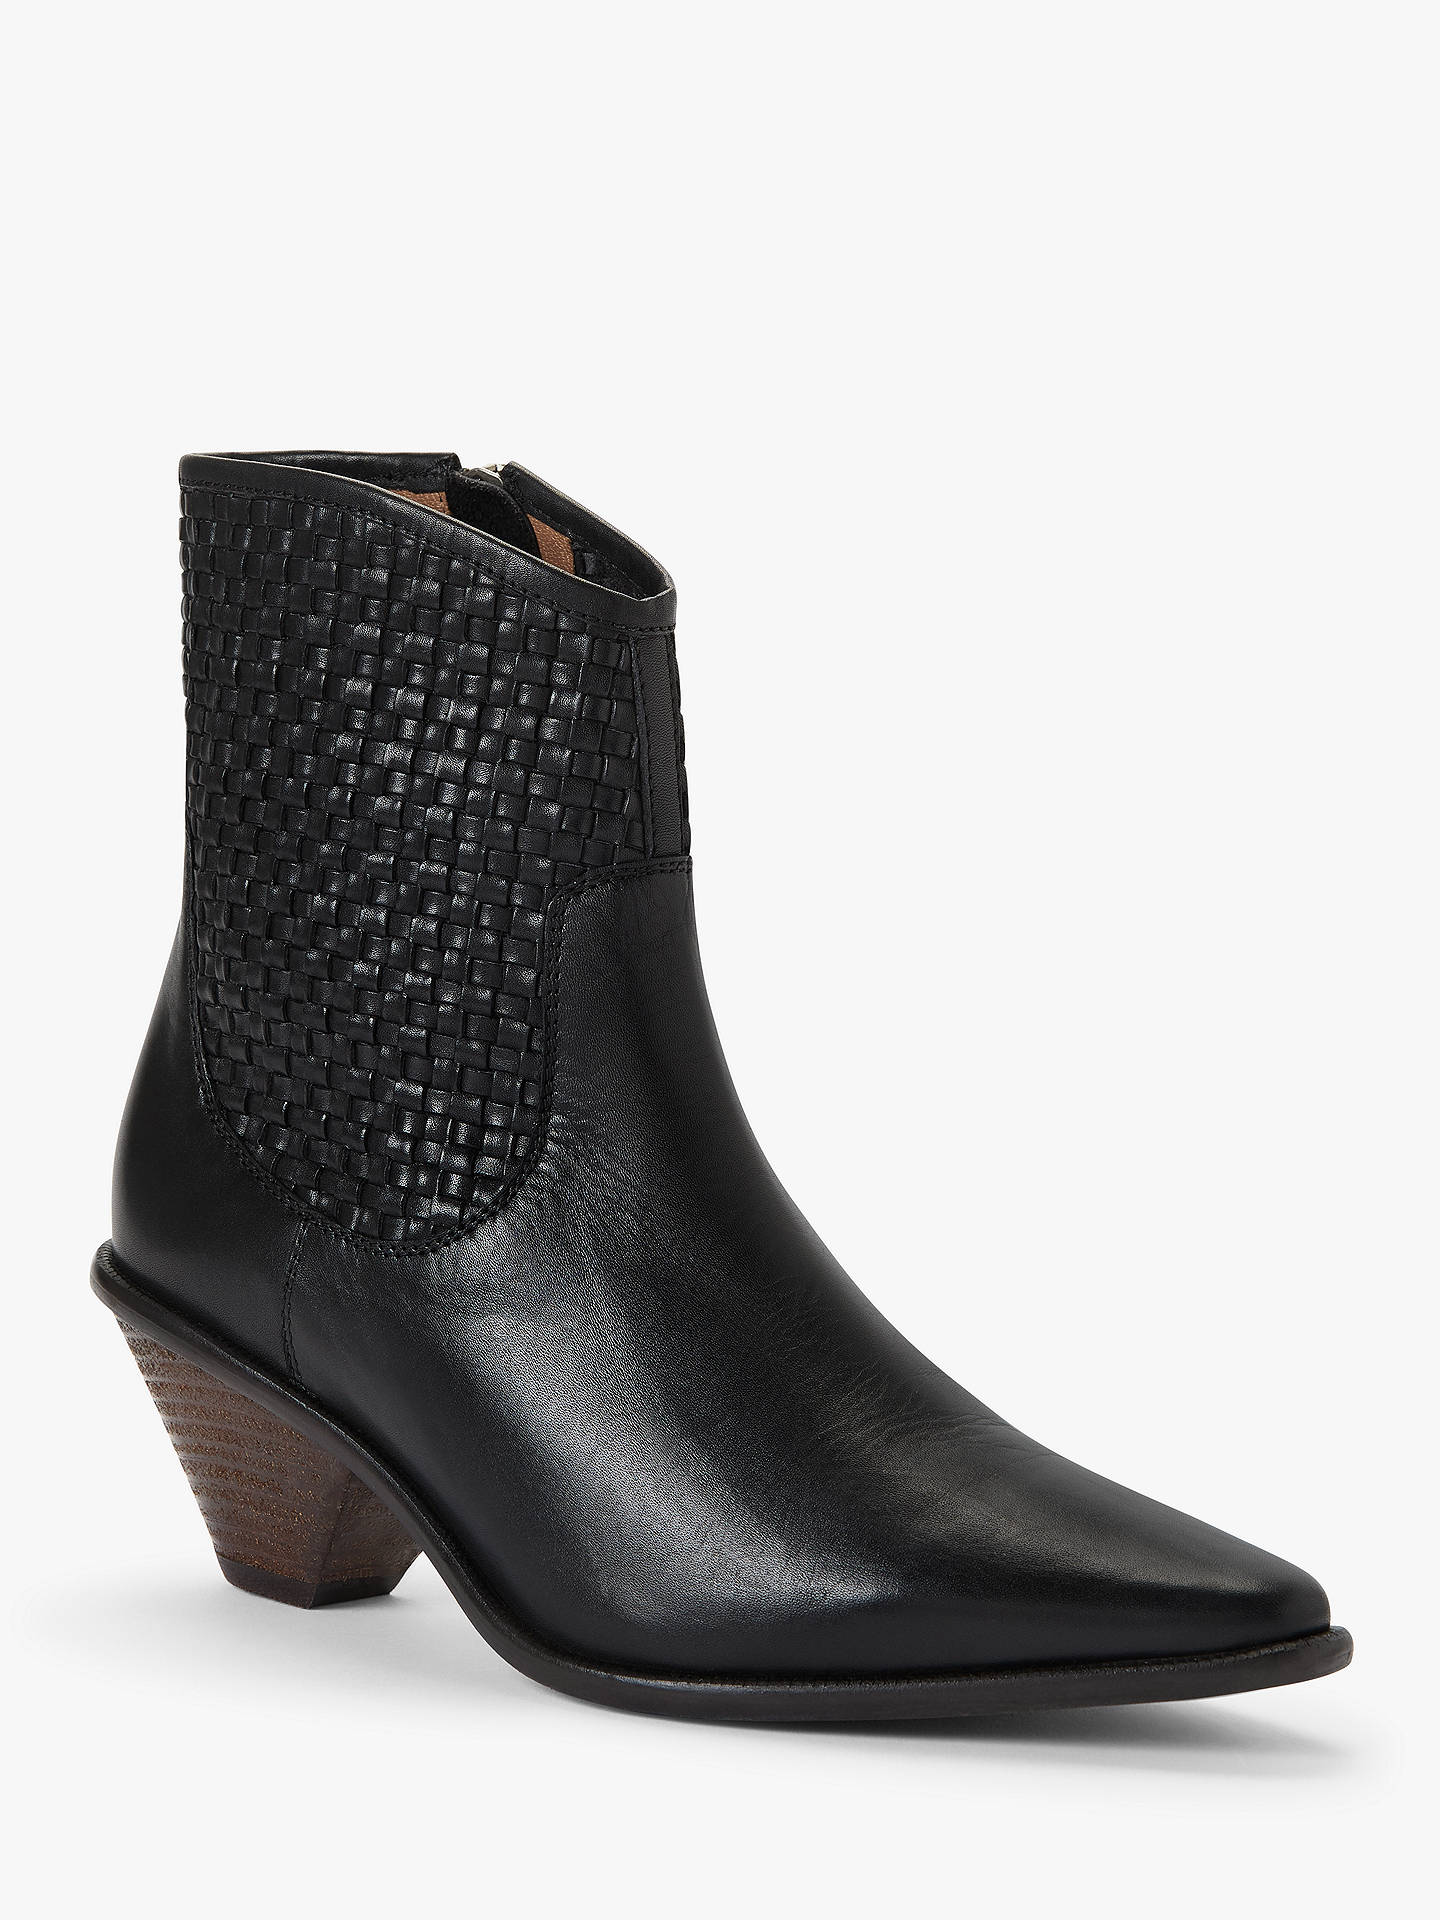 abf9fe66639 Buy AND OR Priya Ankle Boots